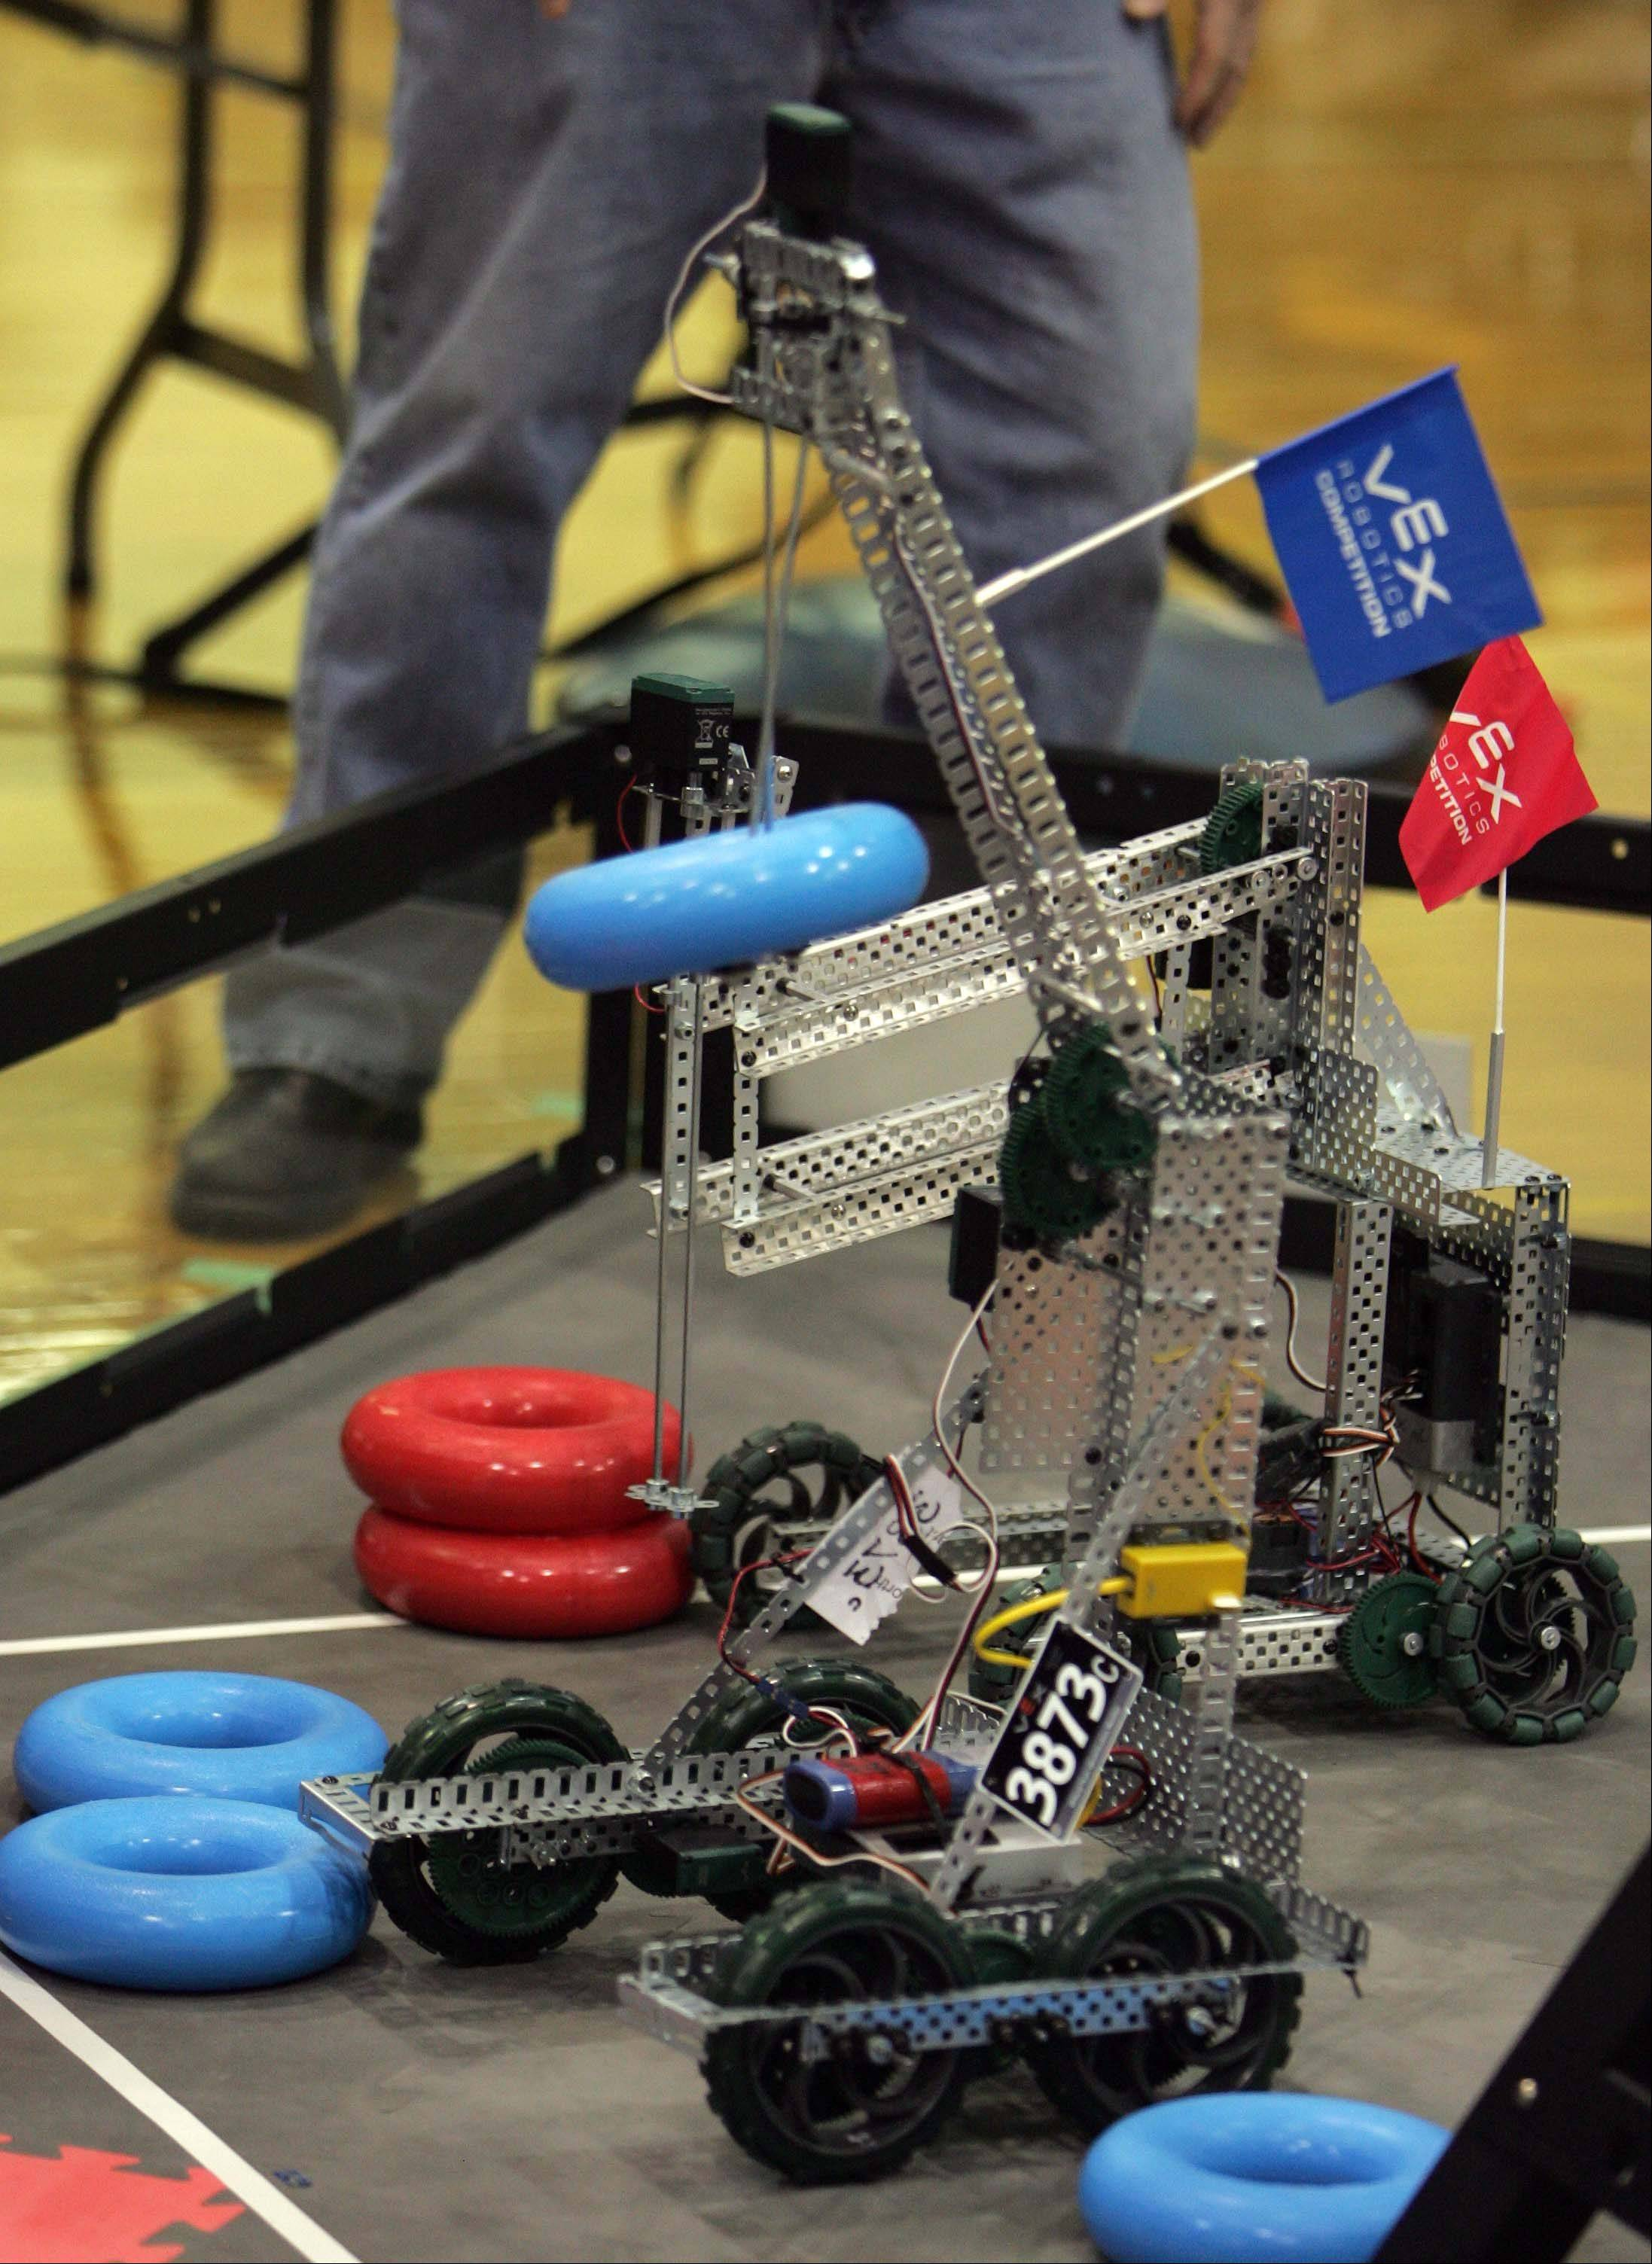 Watch as 400 middle and high school VEX Robotics students from around the Midwest area compete in the Great Lakes-Midwest-Illinois Vex Robotics Championship on Saturday, Feb. 2, at Rotolo Middle School in Batavia.